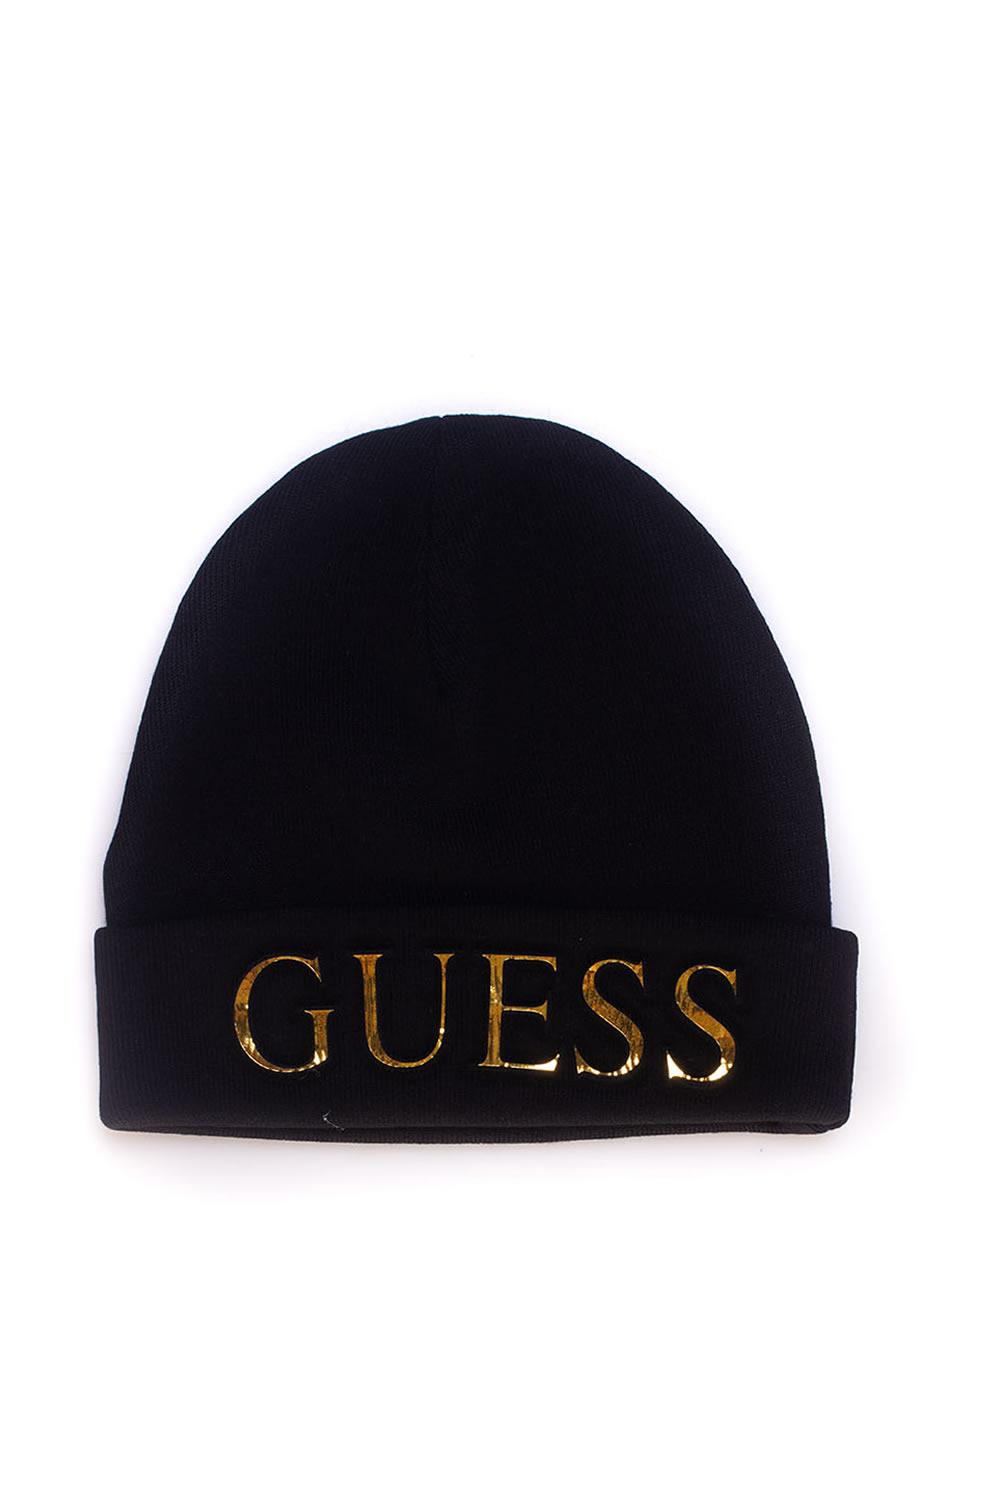 Hat Guess Colore  nero. Product  W84Z47-Z26I0JBLK Availability  Sold out 010c3ca89880